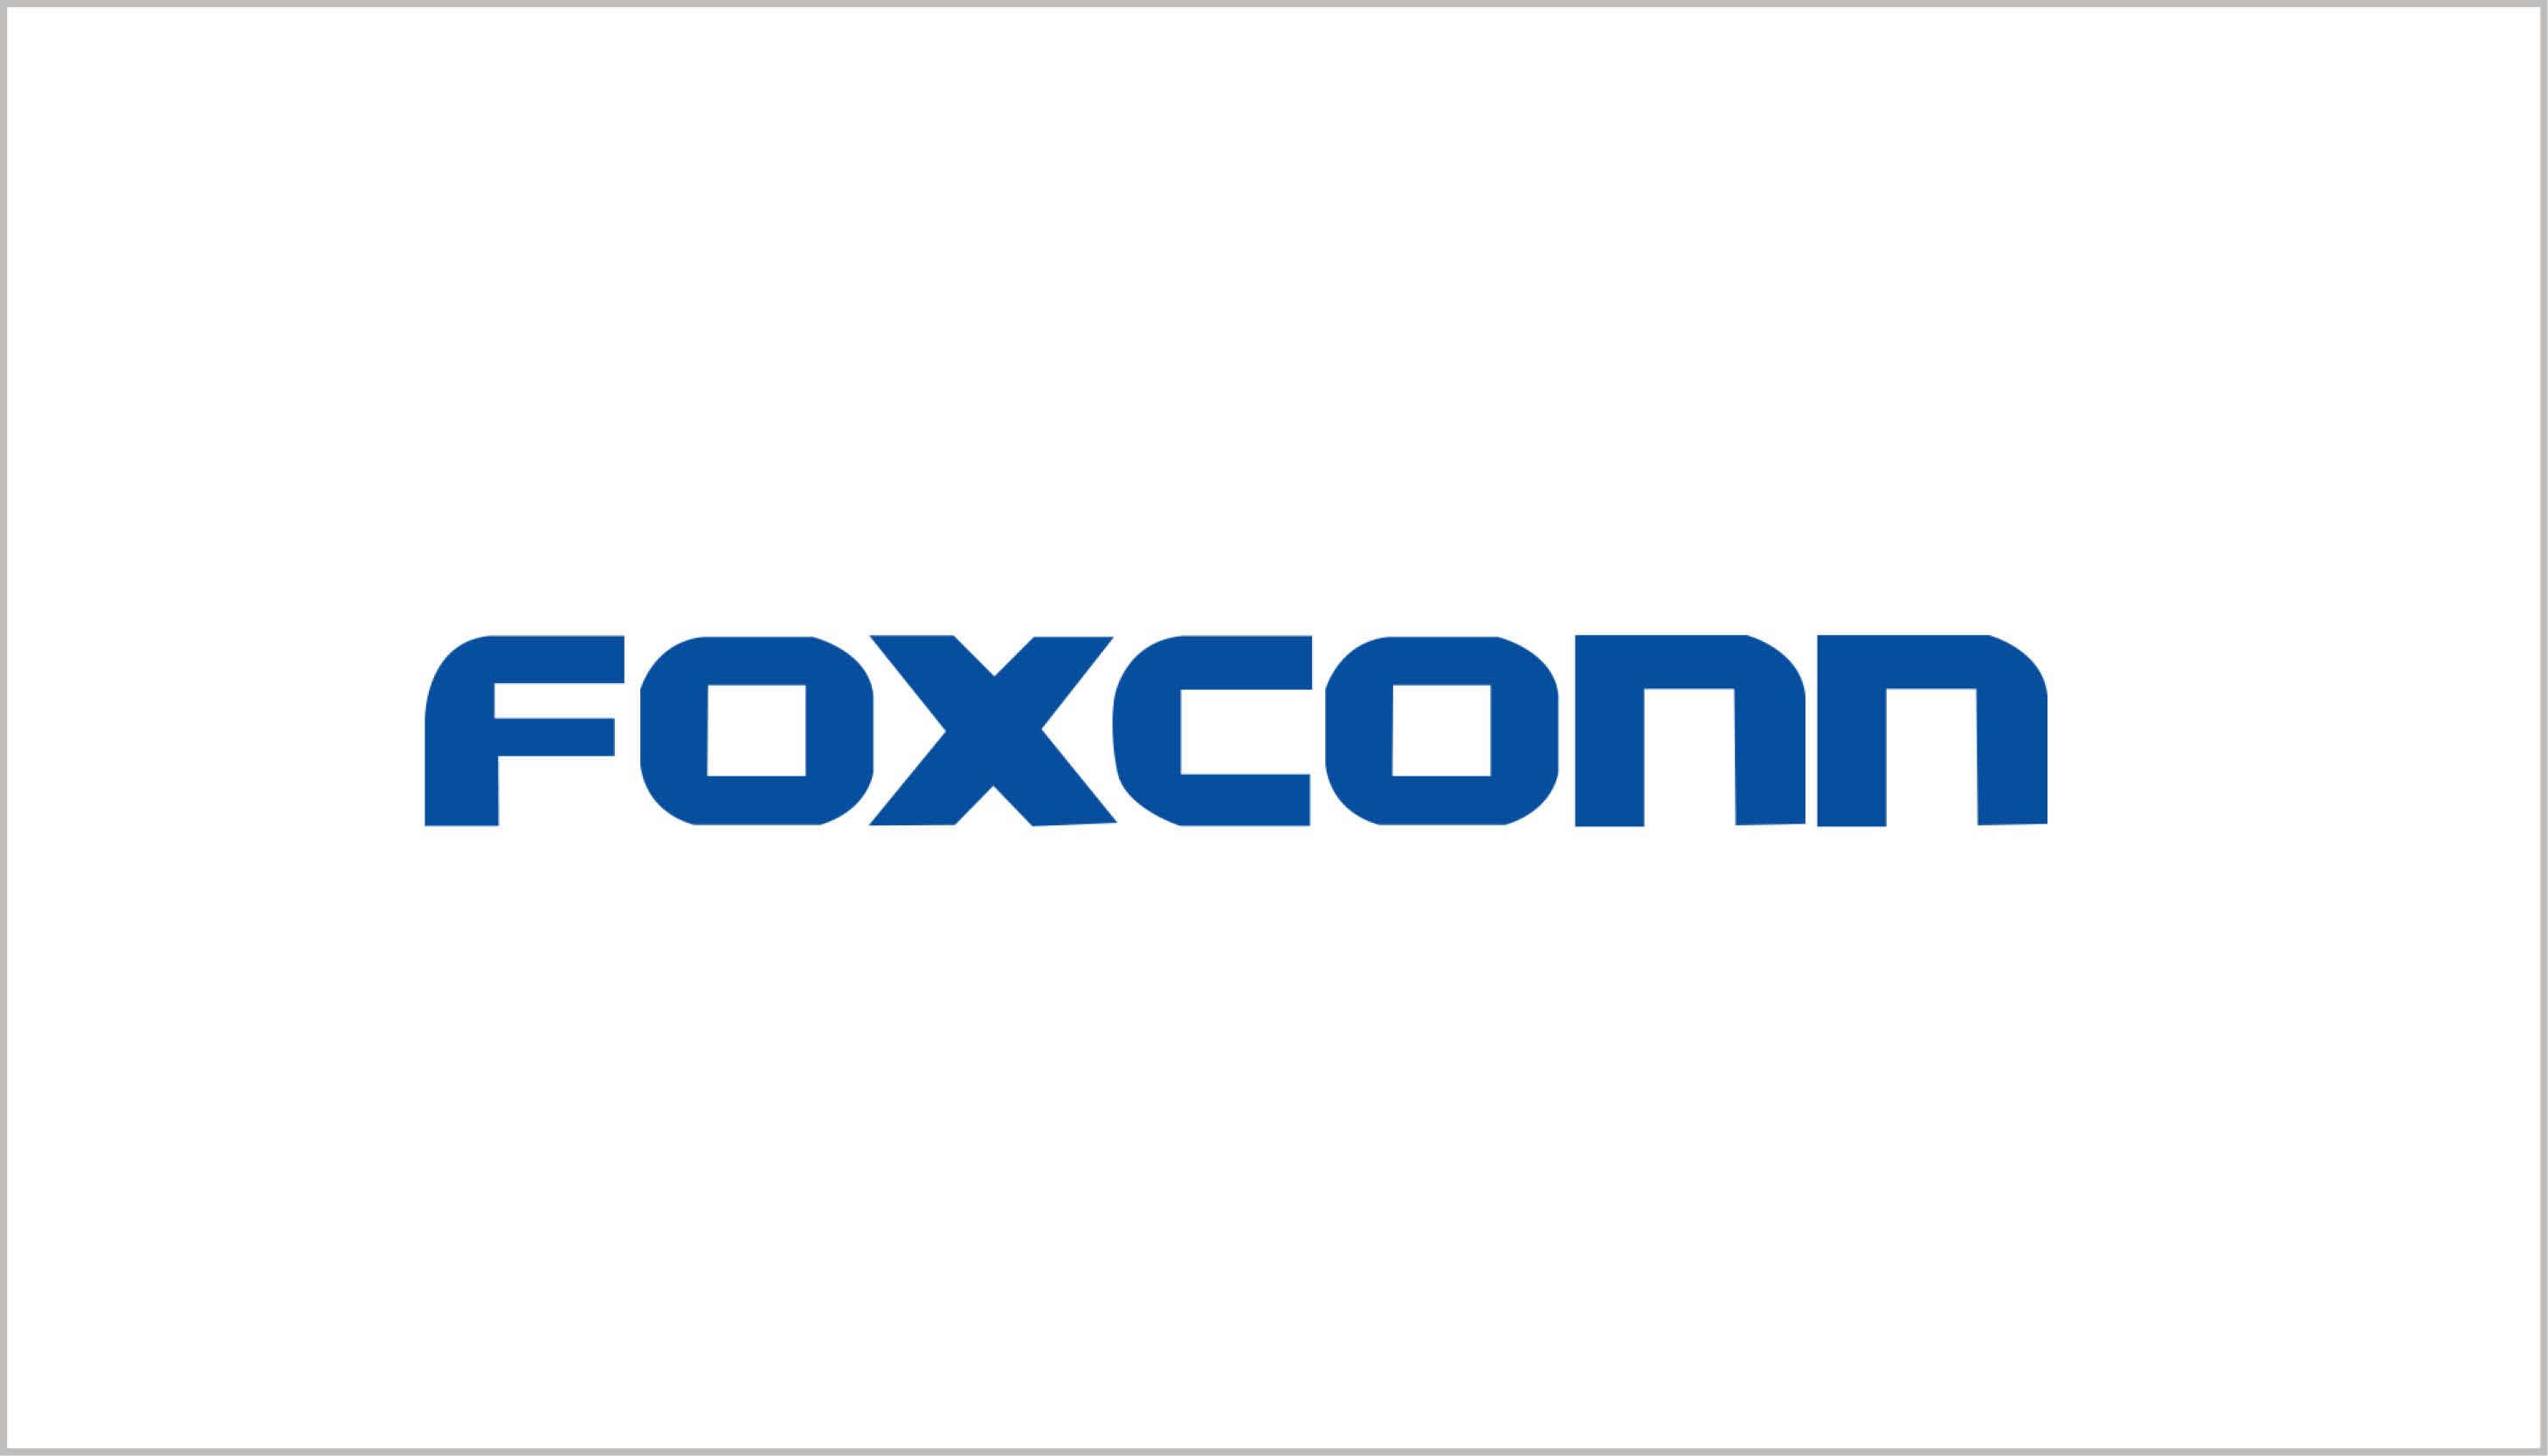 Foxconn seeks approval for data center, 100-foot-tall glass globe operations center Image